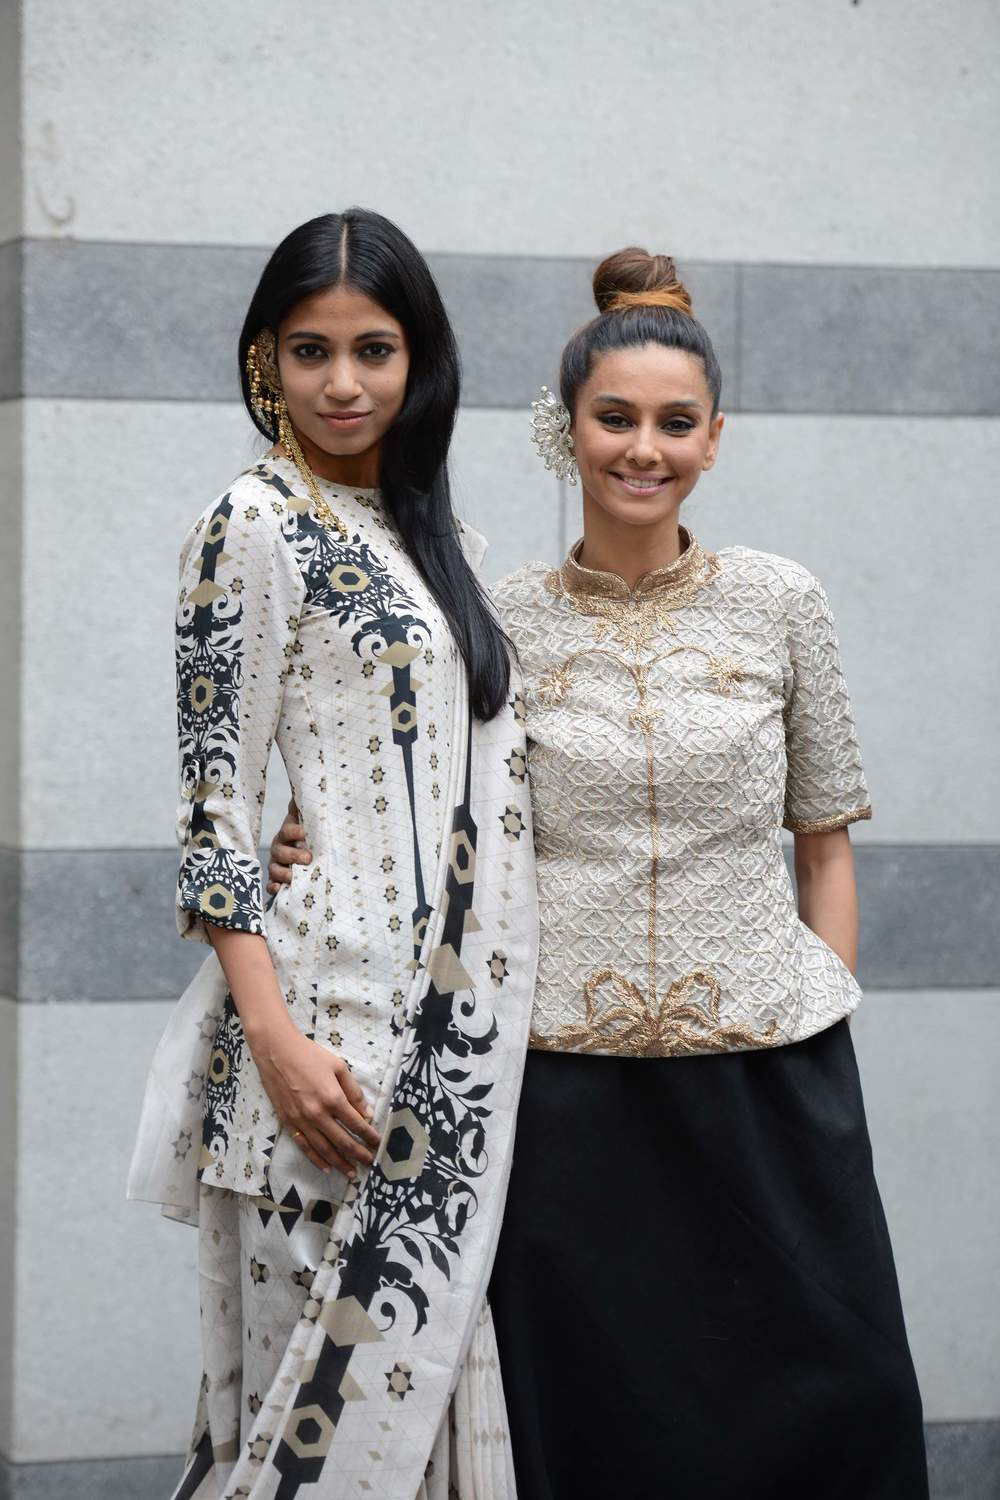 Shibani Dandekar and Bhagyashree Raut  dressed in Lady Sahara by Payal Singhal 2